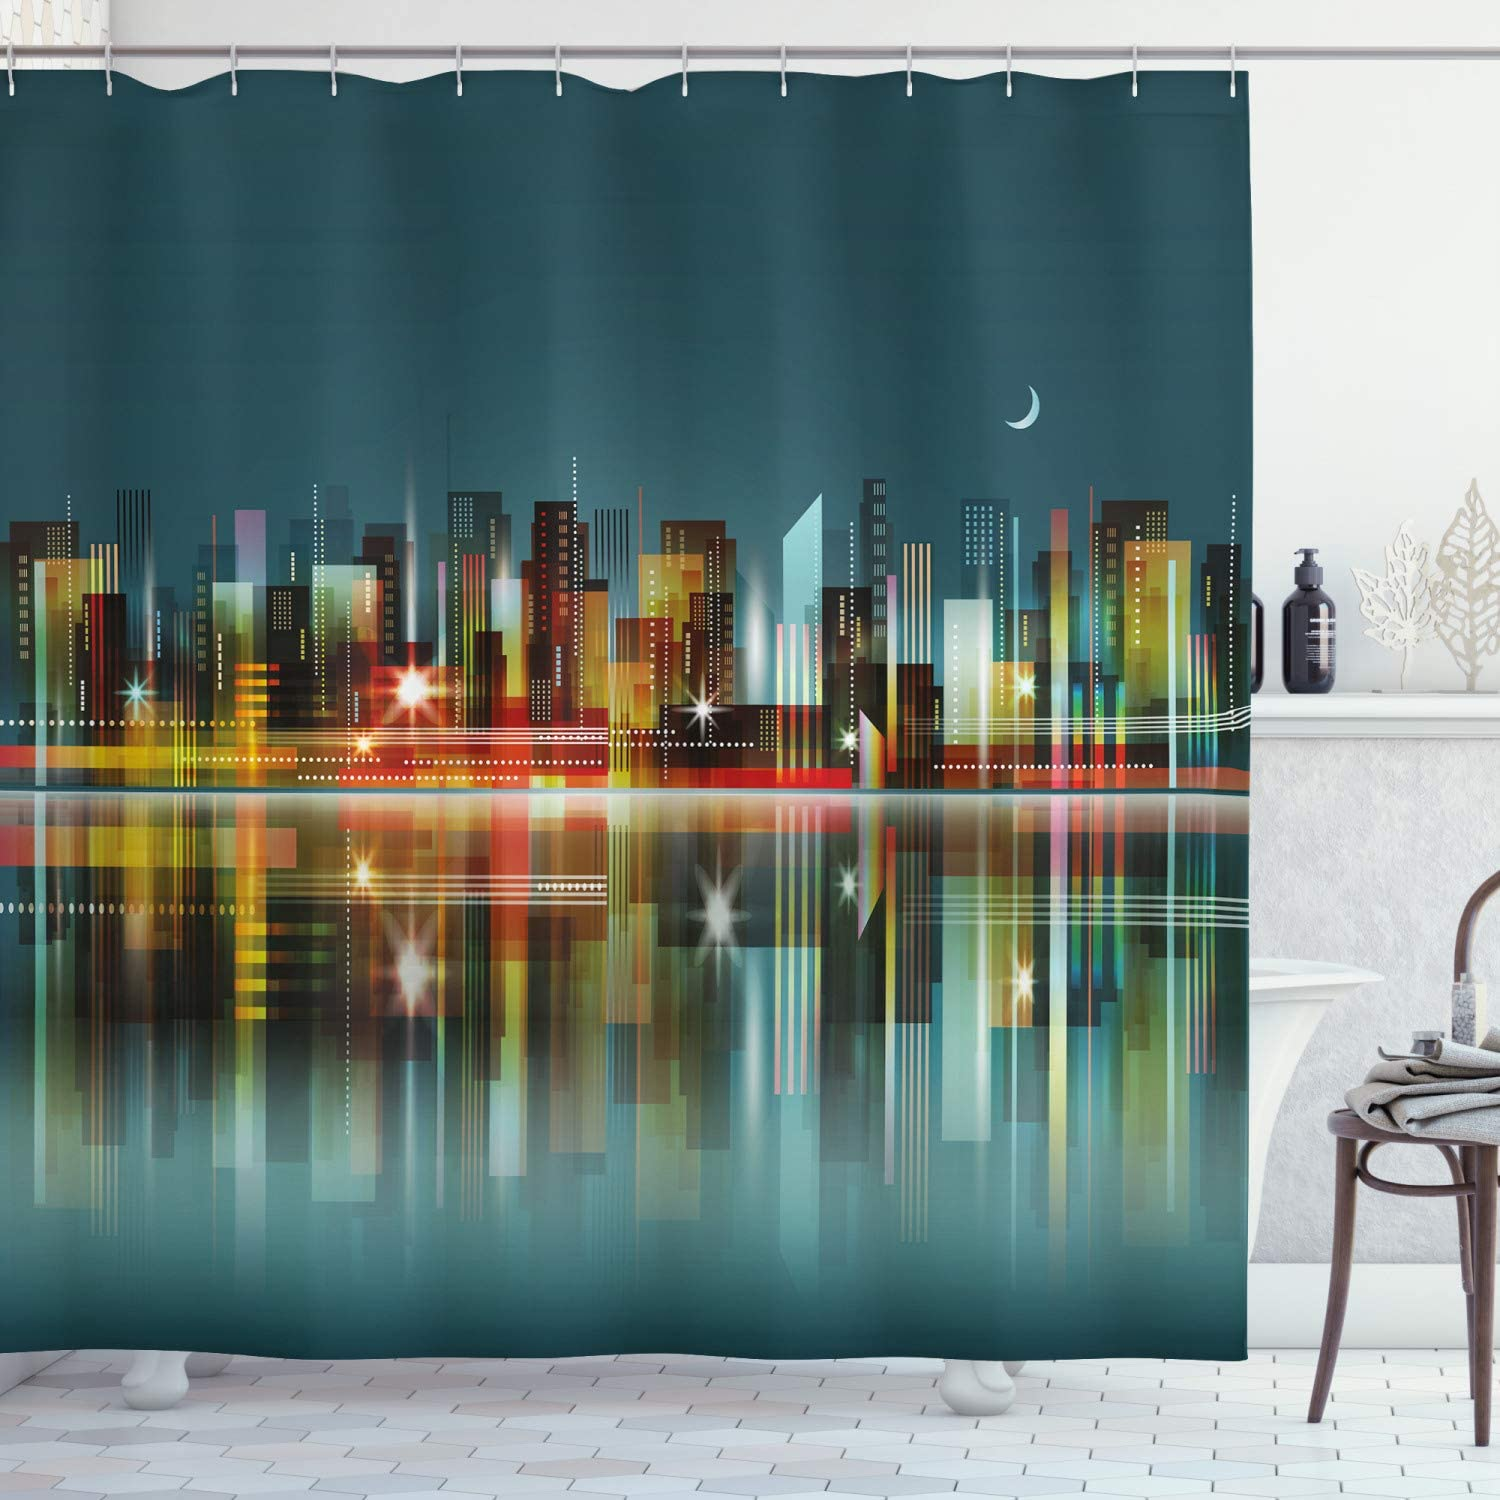 """Ambesonne Modern Shower Curtain, Illustration of a City Silhouette Skyline at Night Buildings Skyscrapers Urban View, Cloth Fabric Bathroom Decor Set with Hooks, 70"""" Long, Dark Cadet"""